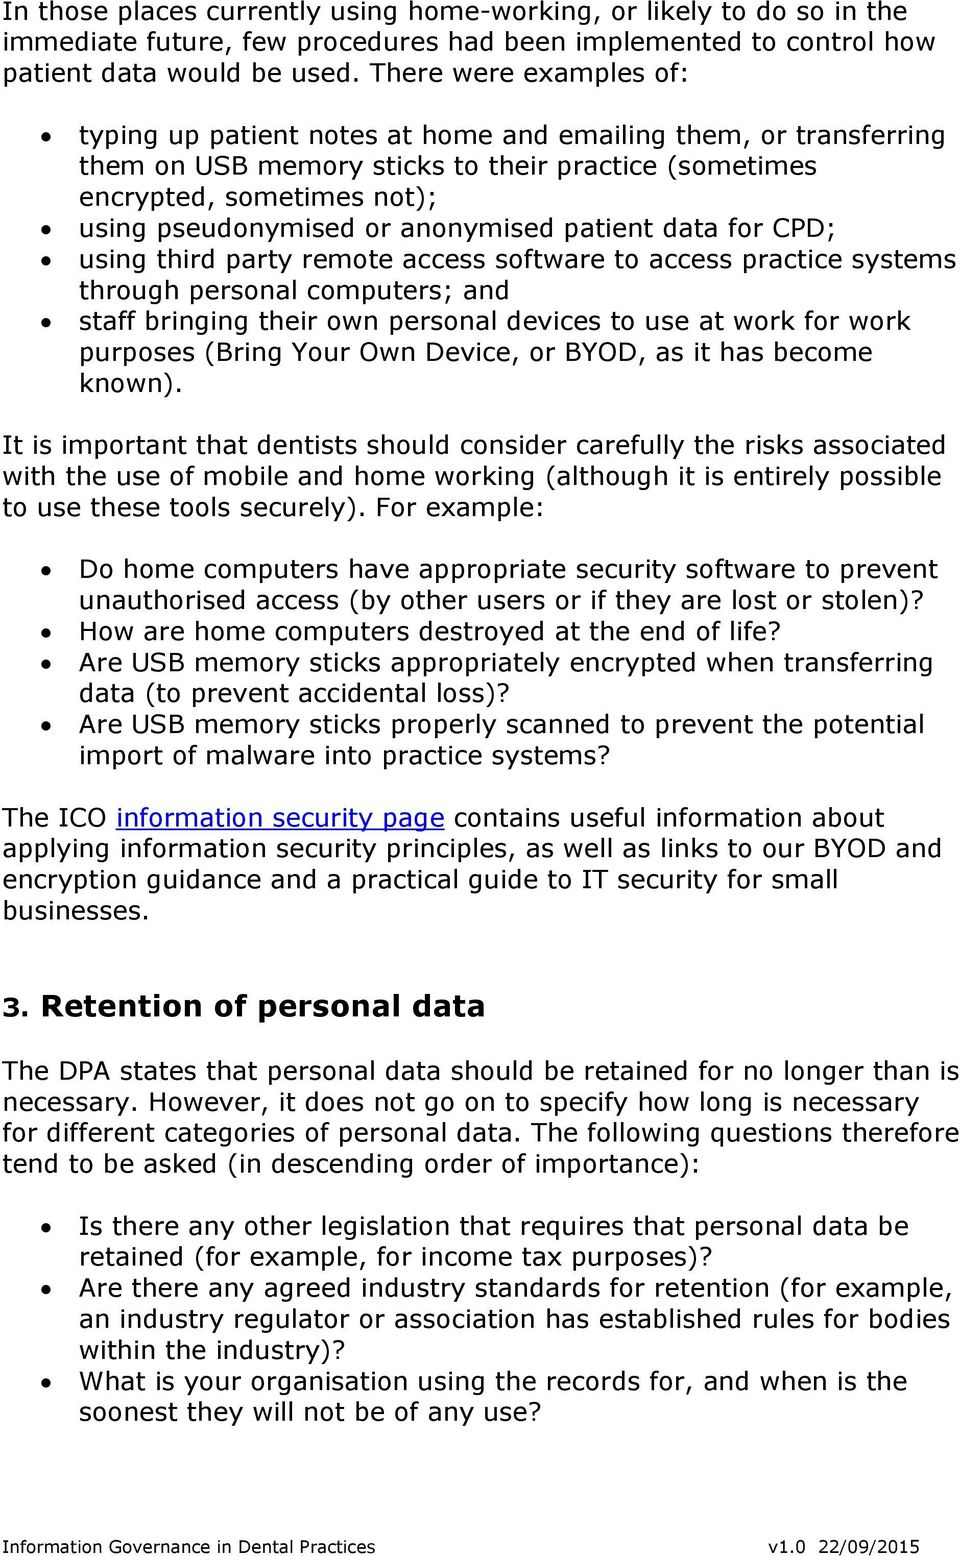 anonymised patient data for CPD; using third party remote access software to access practice systems through personal computers; and staff bringing their own personal devices to use at work for work